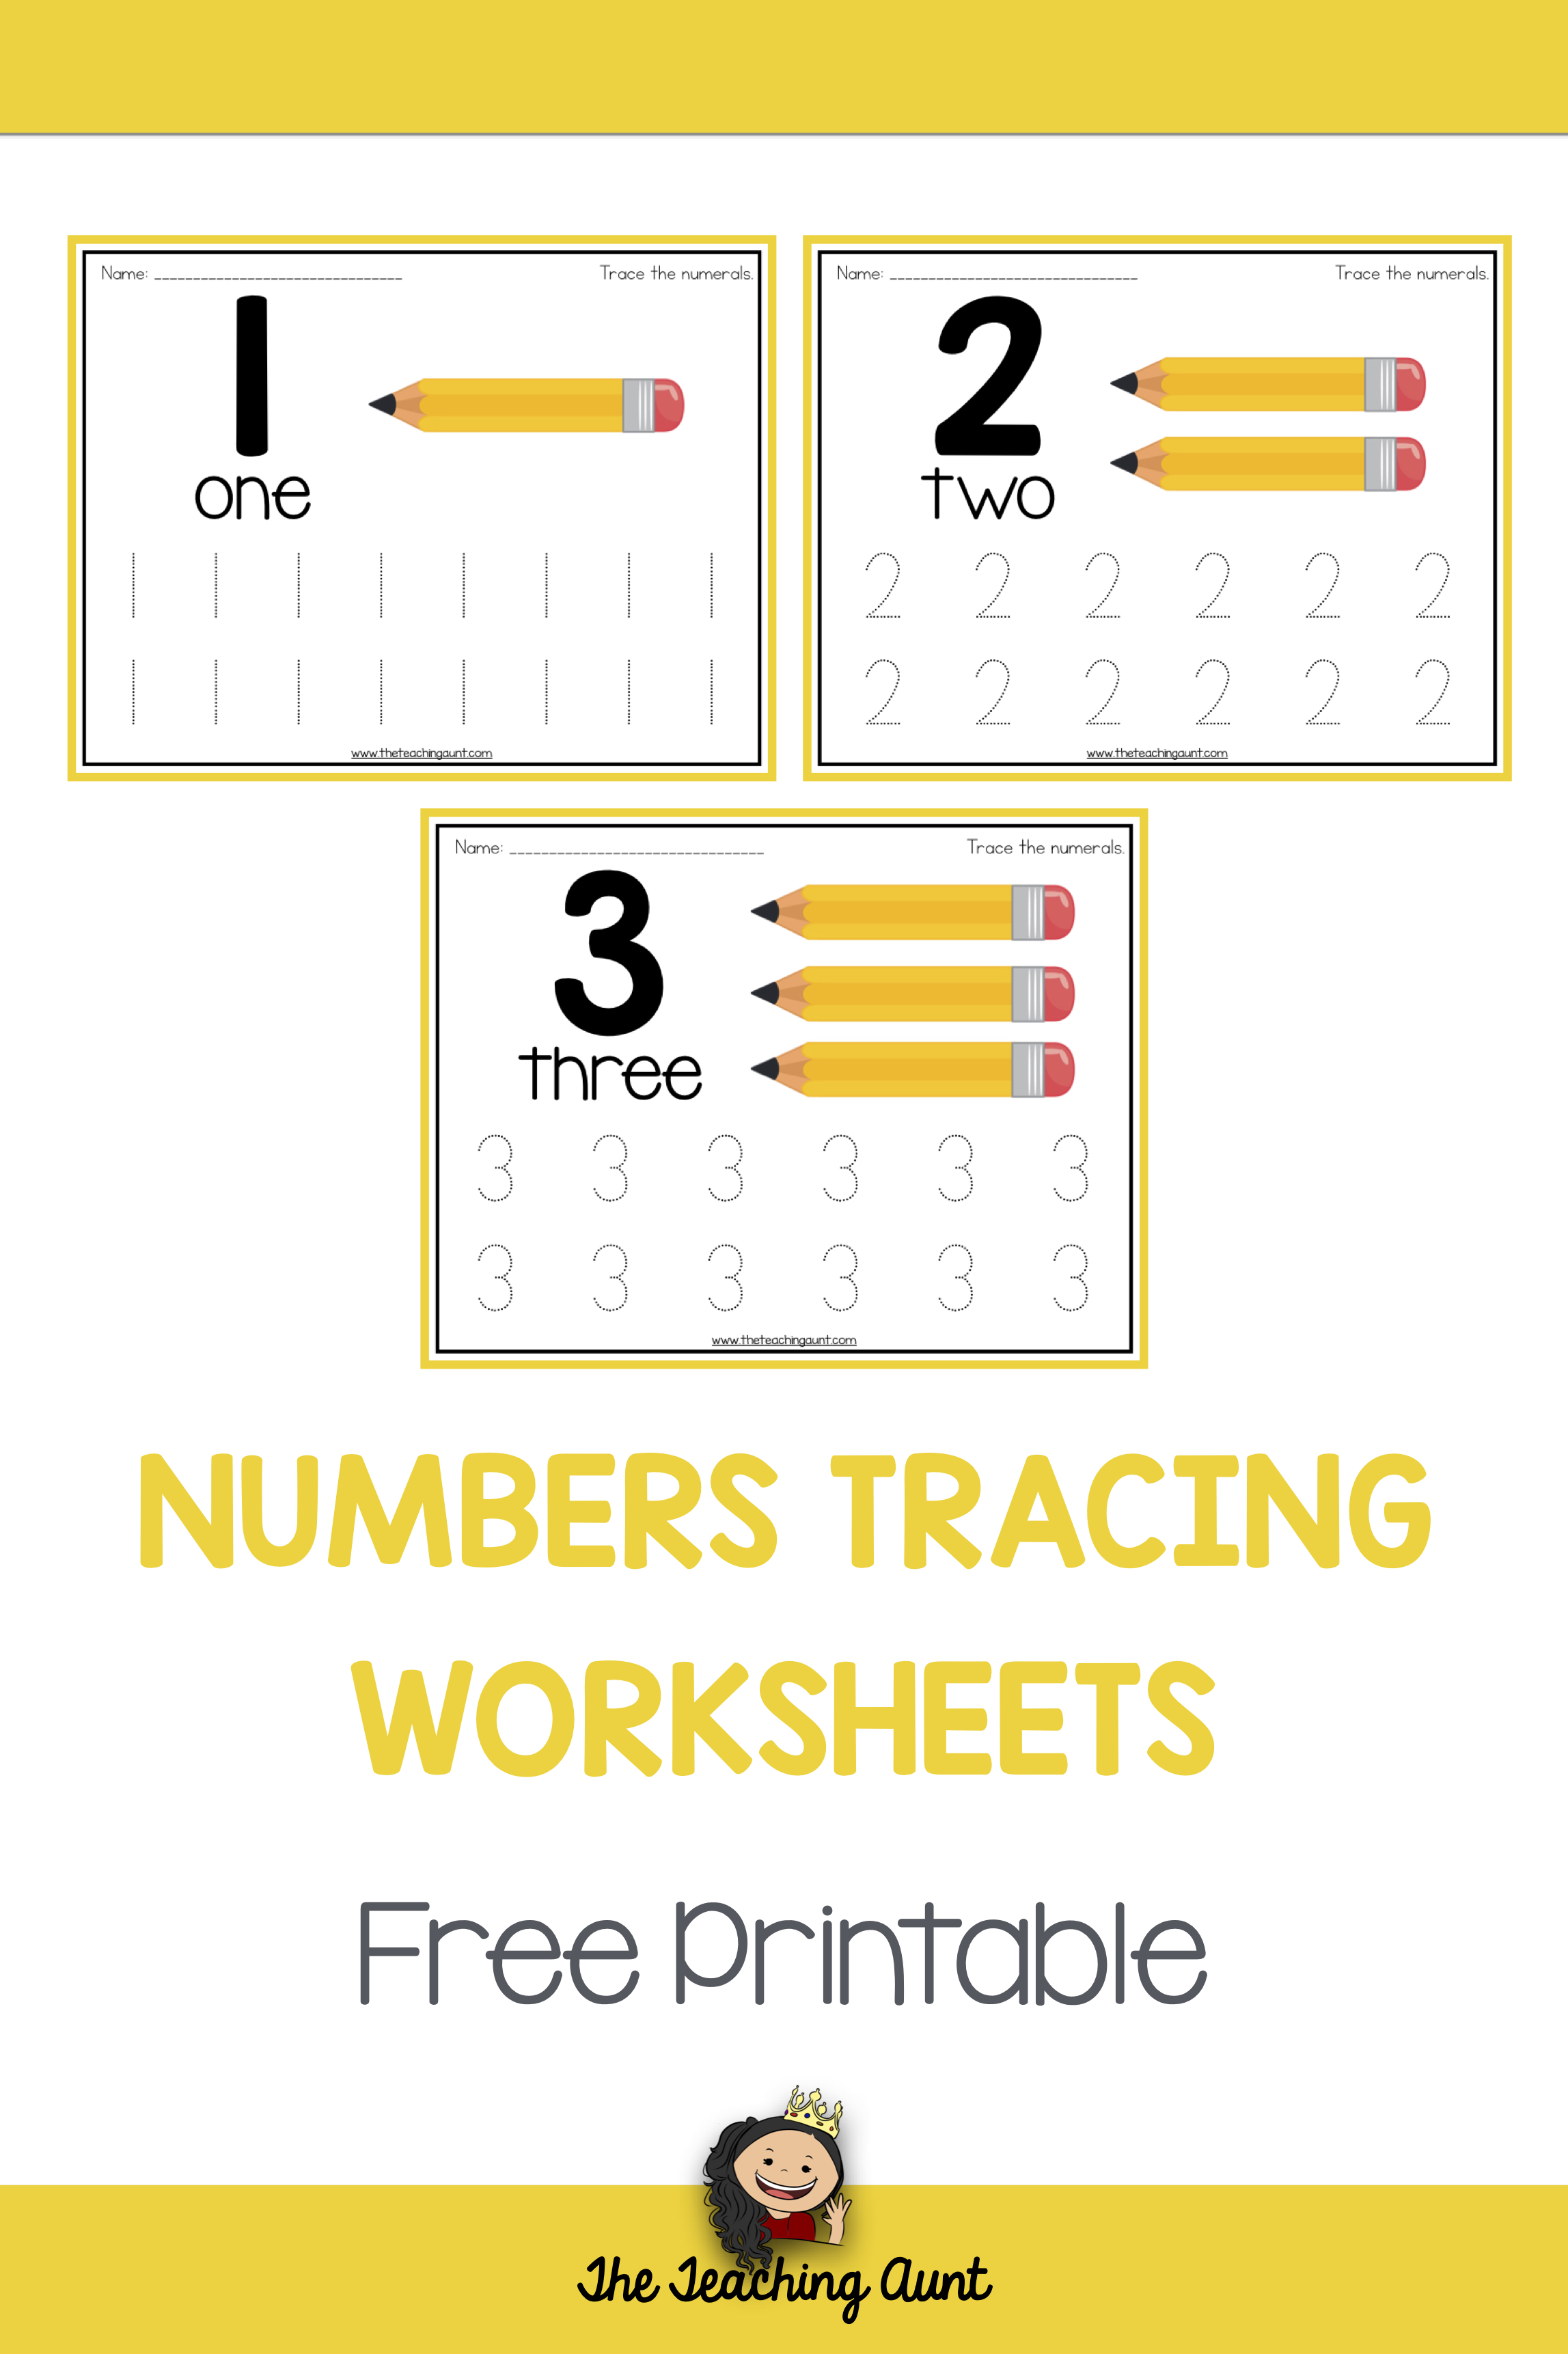 Number Tracing Worksheets For Children The Teaching Aunt Teaching Kindergarten Teaching Numbers Preschool Learning [ 3445 x 2295 Pixel ]